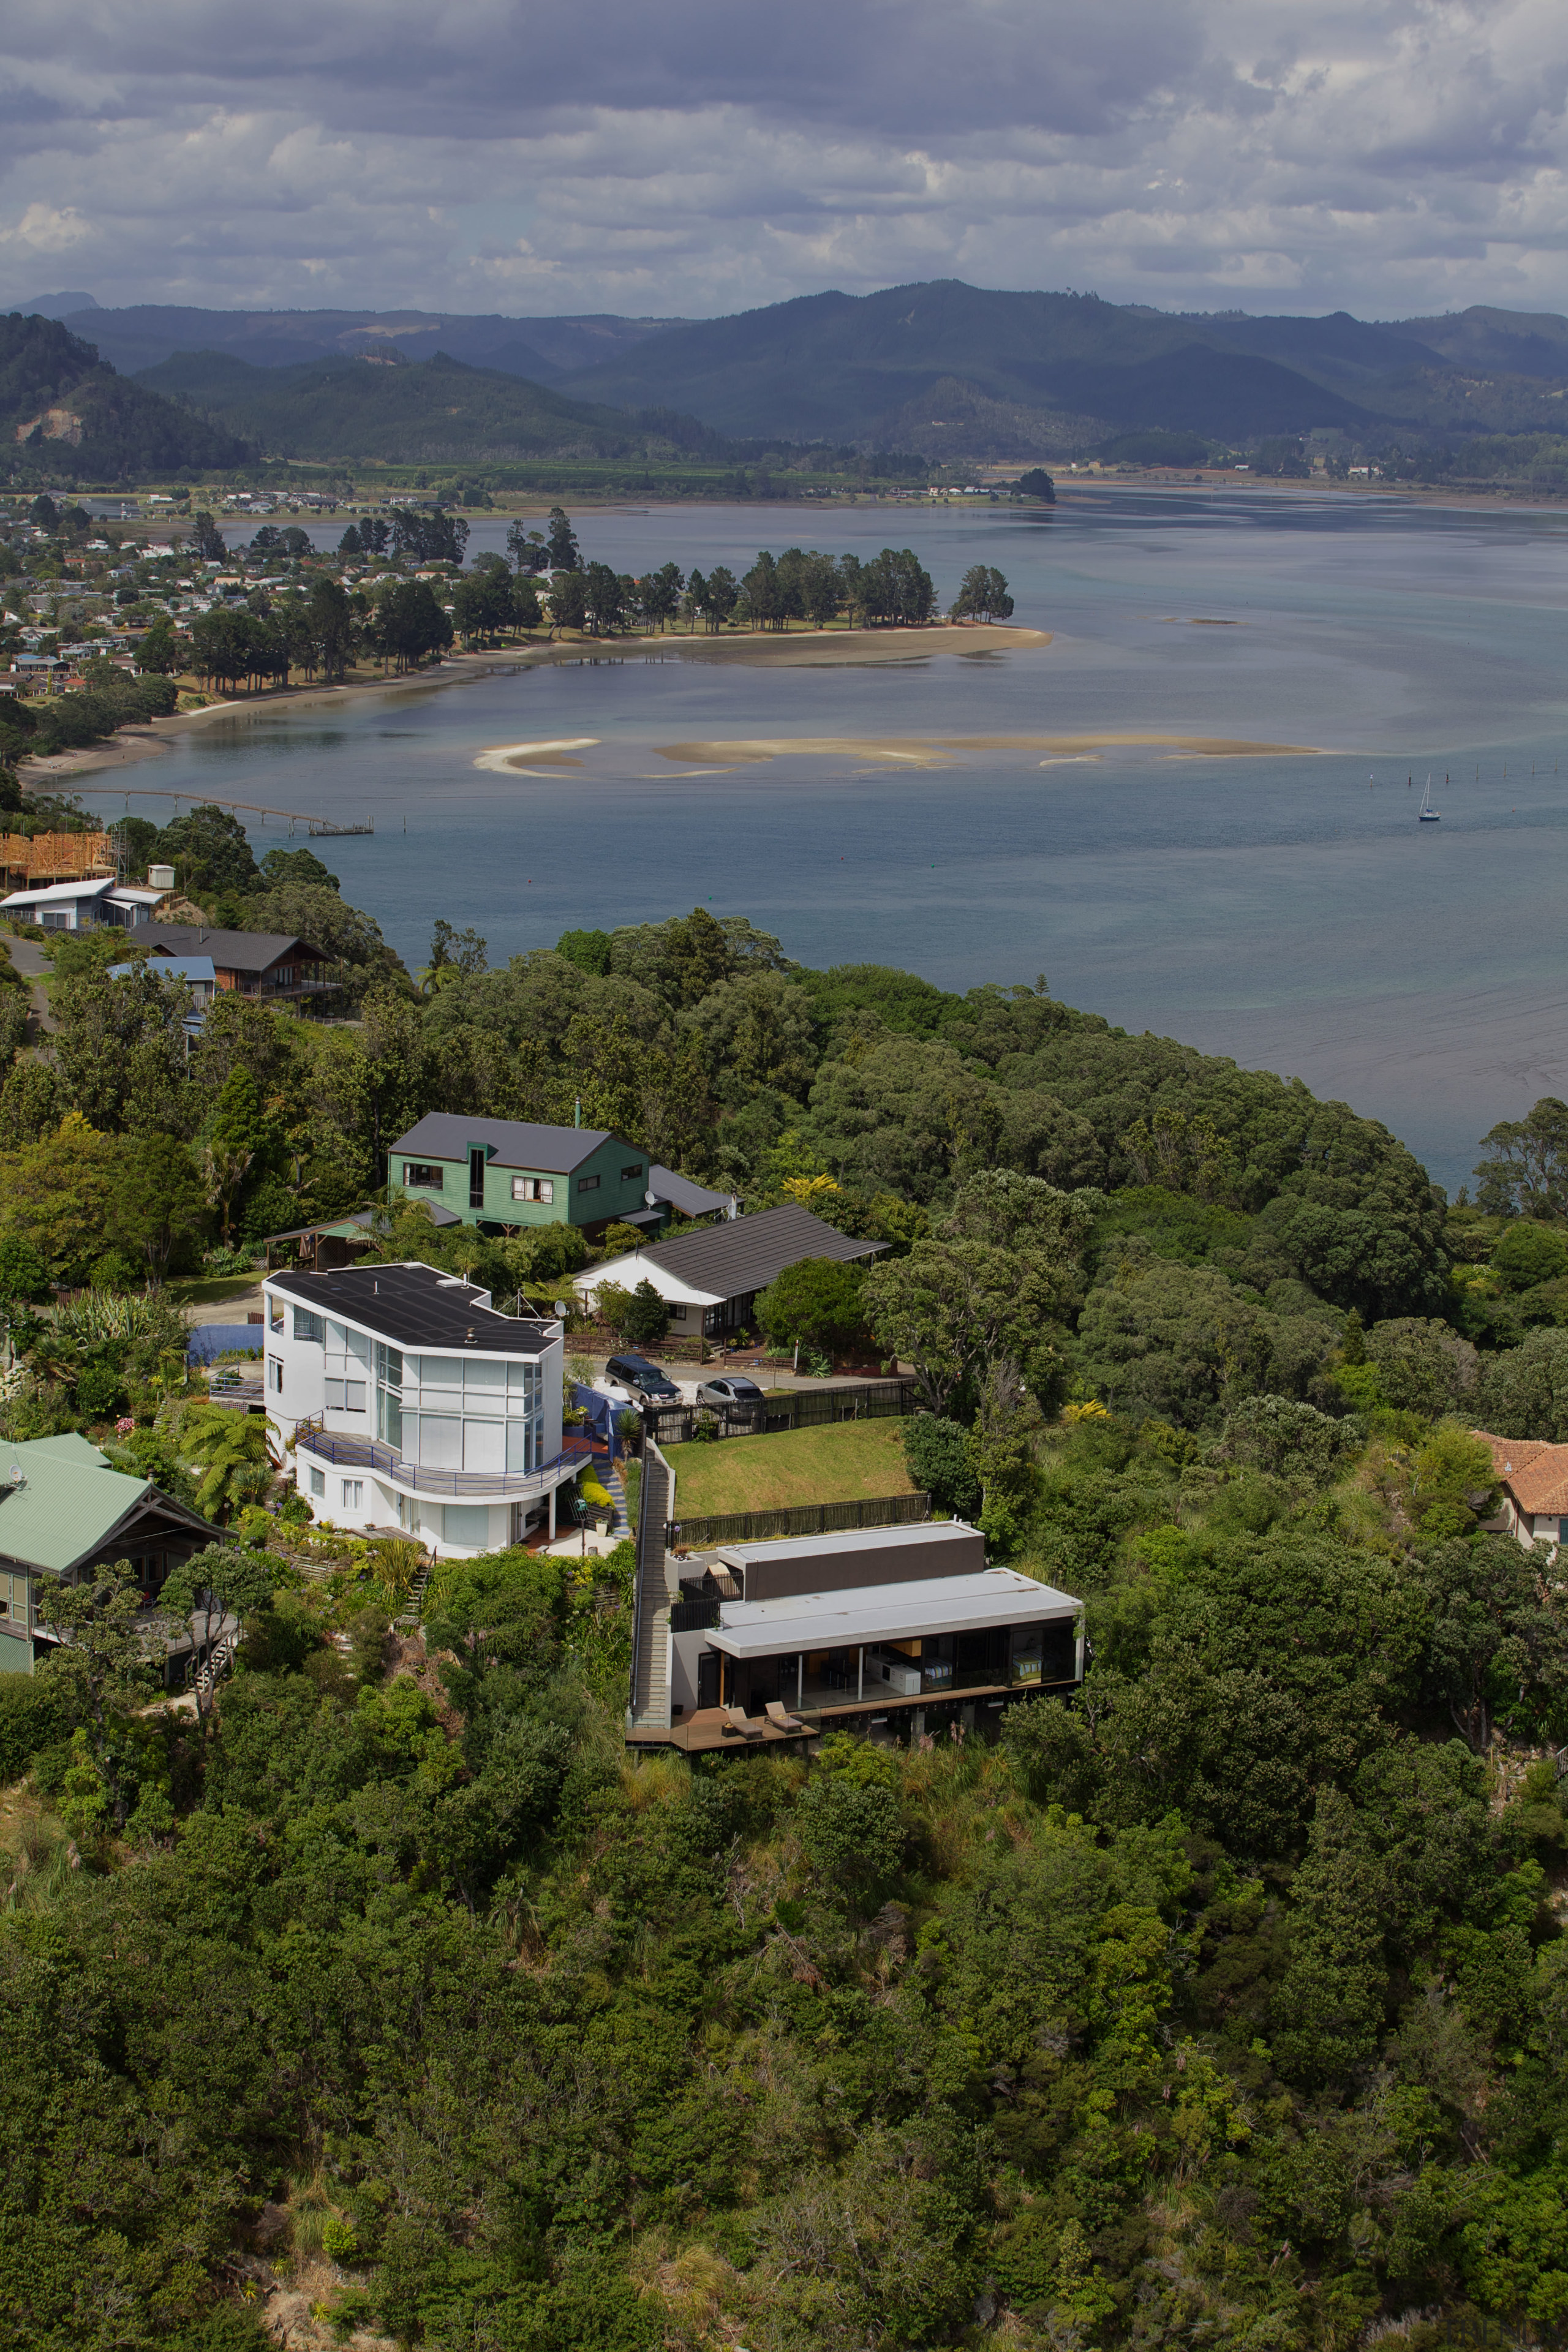 Hidden from the street above, the holiday home aerial photography, bay, bird's eye view, city, cloud, coast, highland, hill, hill station, house, lake, landscape, loch, mountain, real estate, reservoir, river, sea, sky, suburb, tree, water, brown, gray